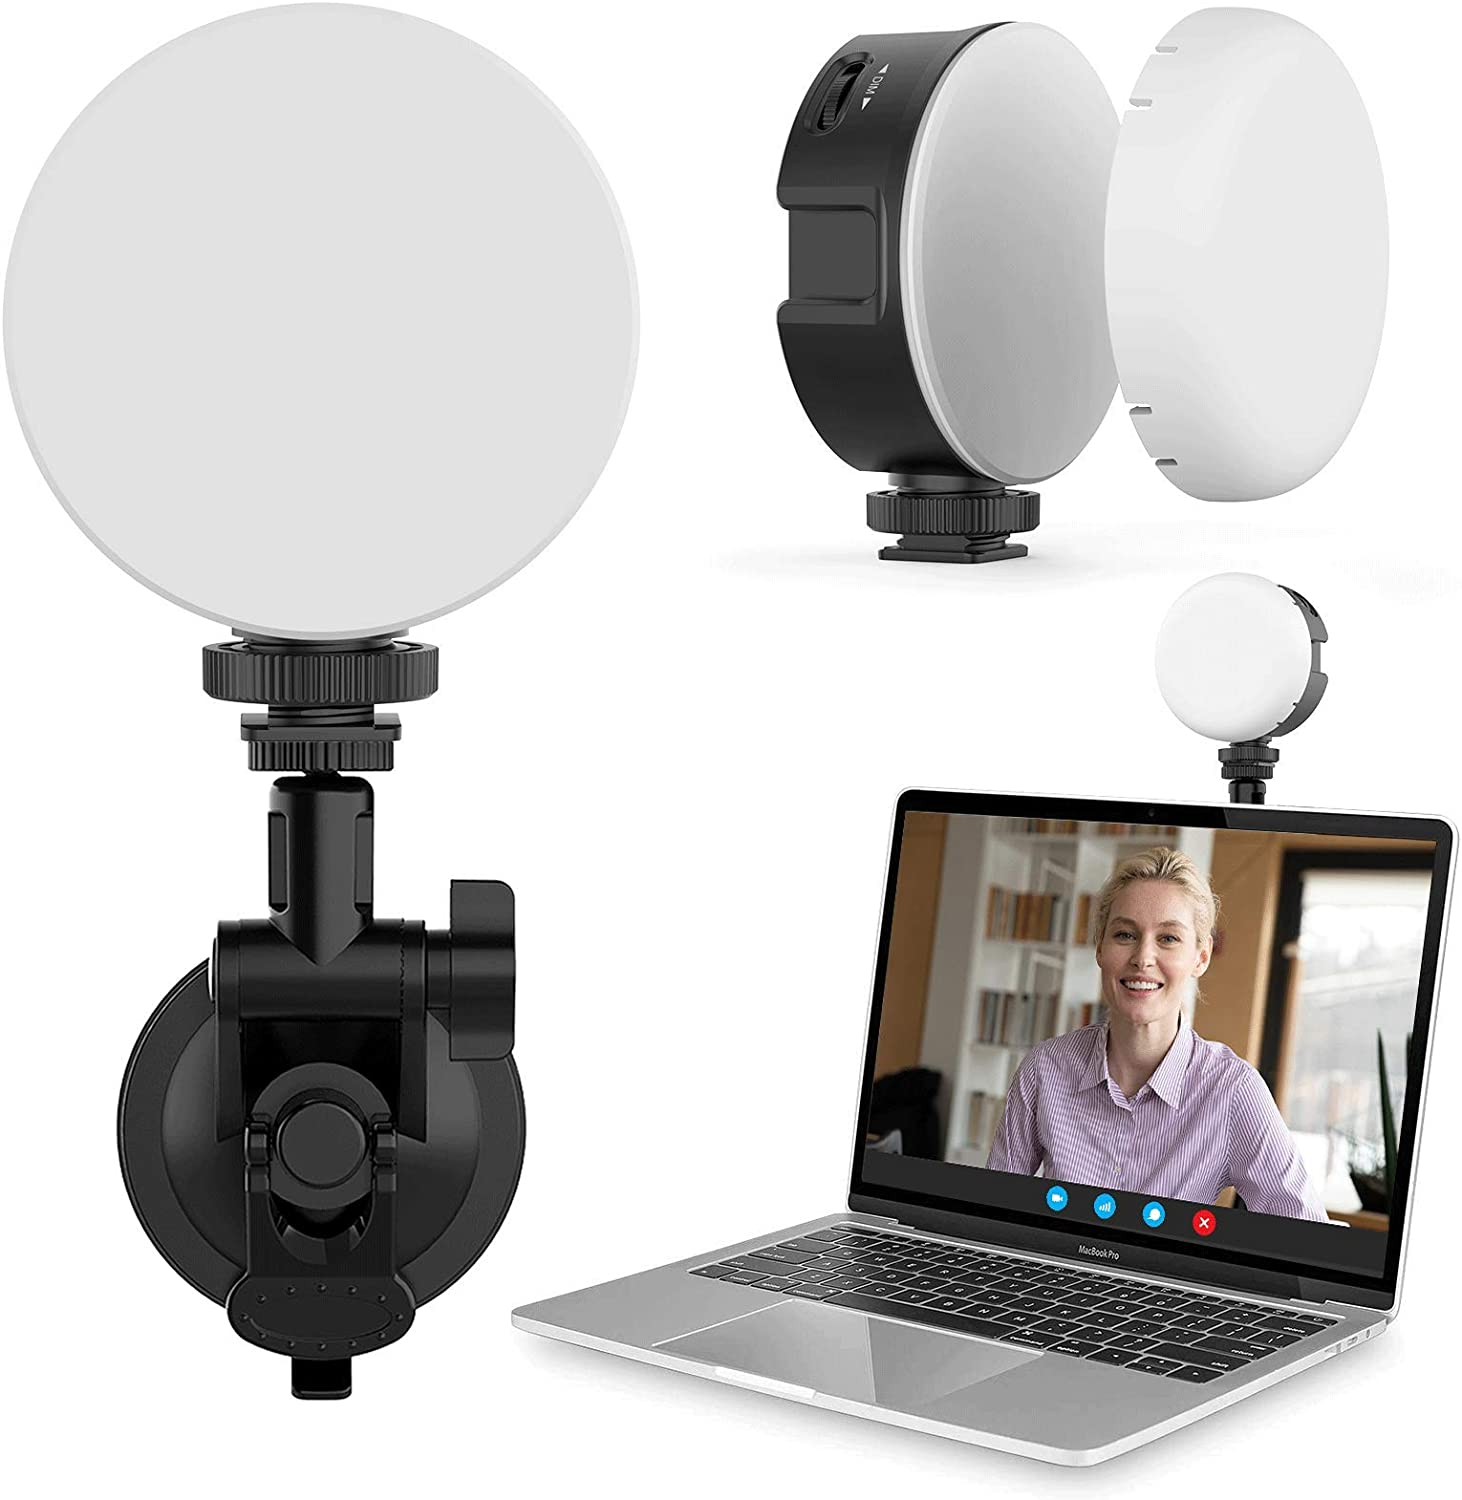 Laptop Light for Video Conferencing,Video Conference Lighting Kit with Strong Suction Cup,Computer Light for Zoom Calls Self Broadcasting Live Streaming Remote Working Compatible with MacBook IPad